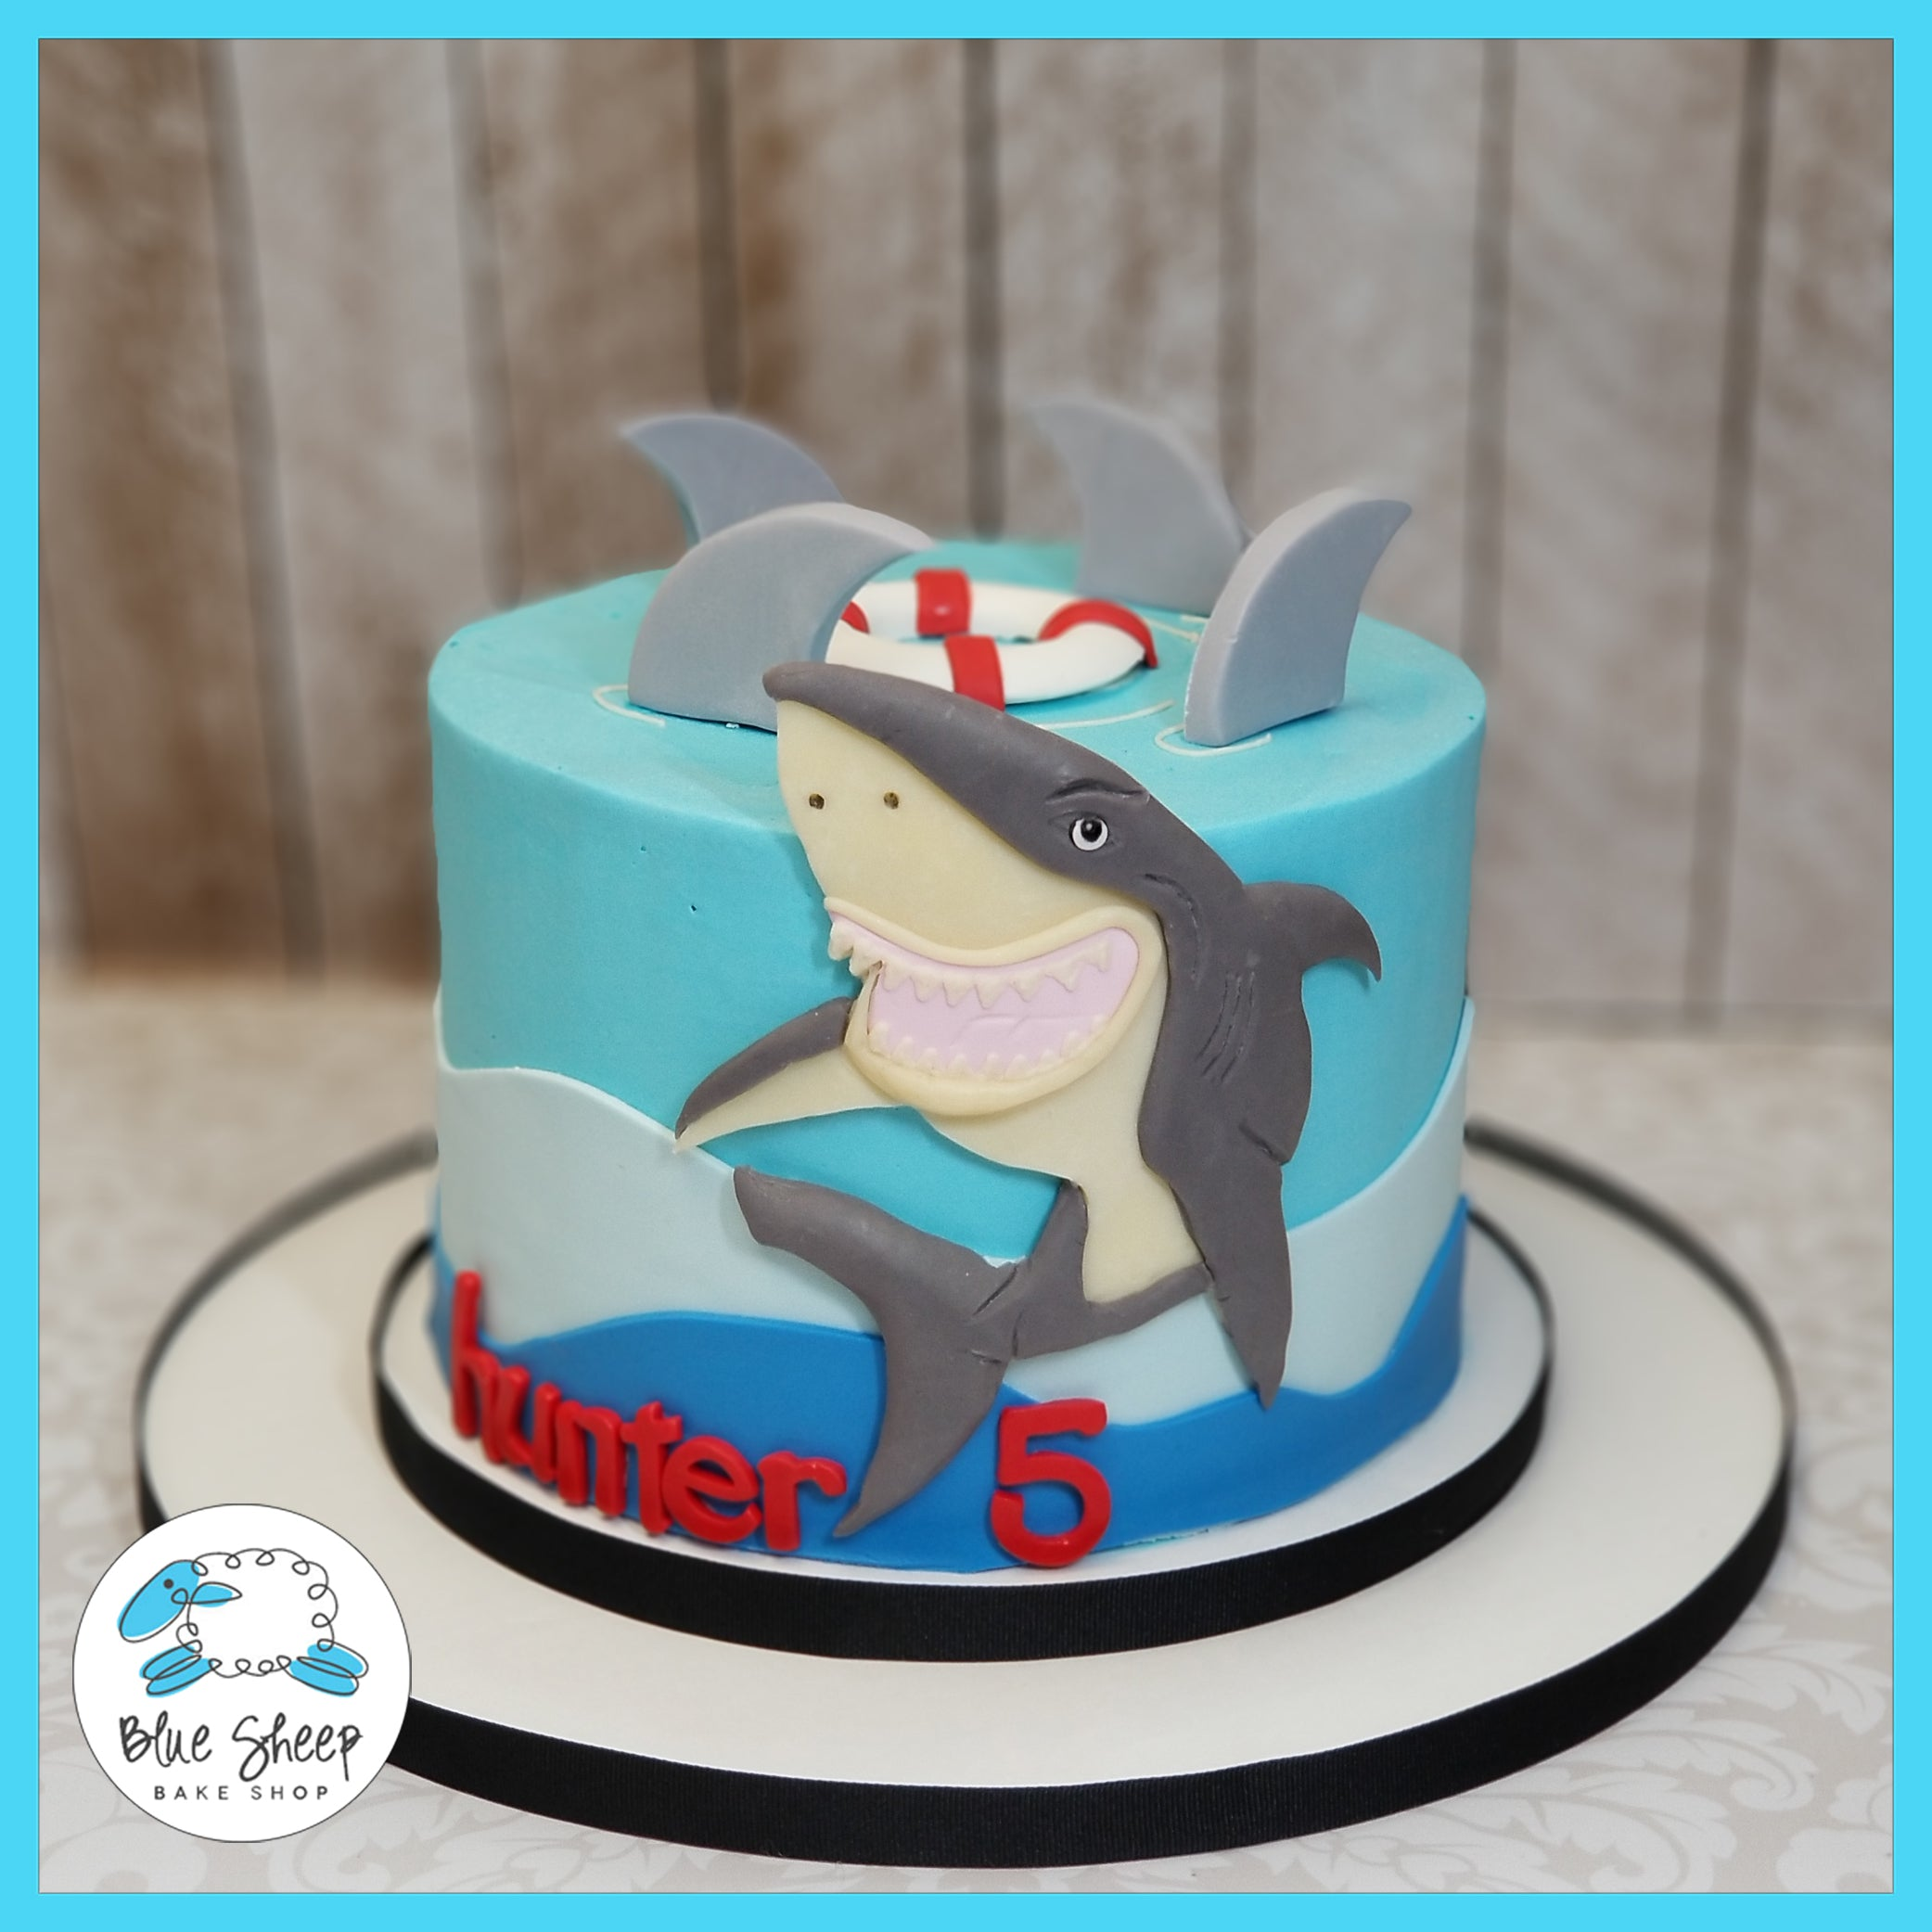 Swell Shark Inspired Birthday Cake Blue Sheep Bake Shop Funny Birthday Cards Online Fluifree Goldxyz